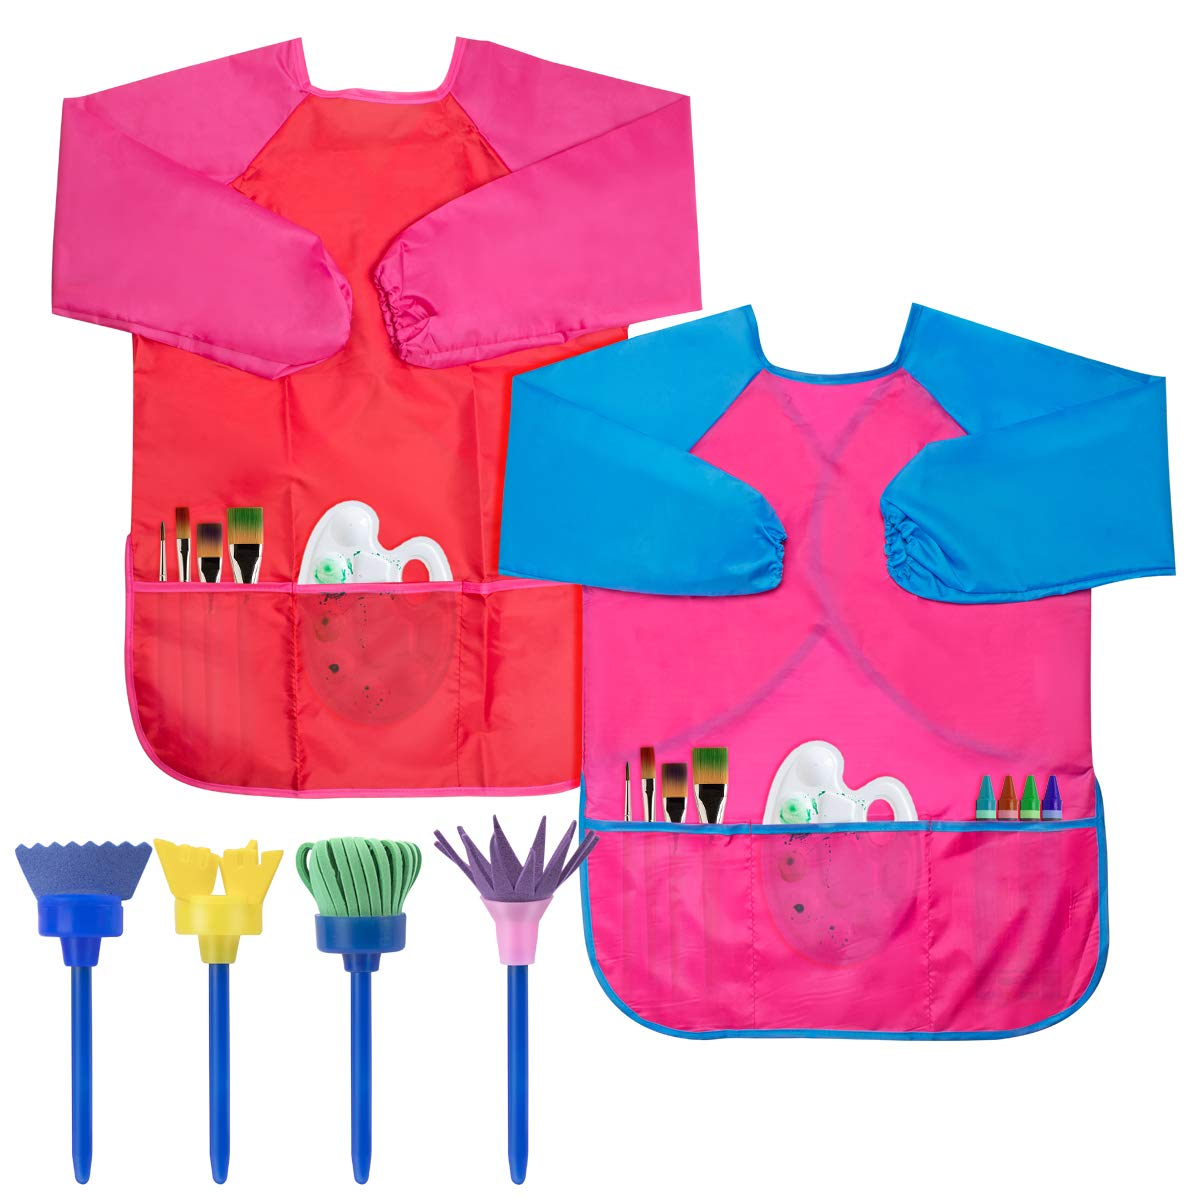 Cubaco Kids Art Smock, 2 Pack Children Waterproof Artist Painting Aprons Long Sleeve with 4 Painting Tools for Art Craft Cooking Lab Activity - Ages 3-8